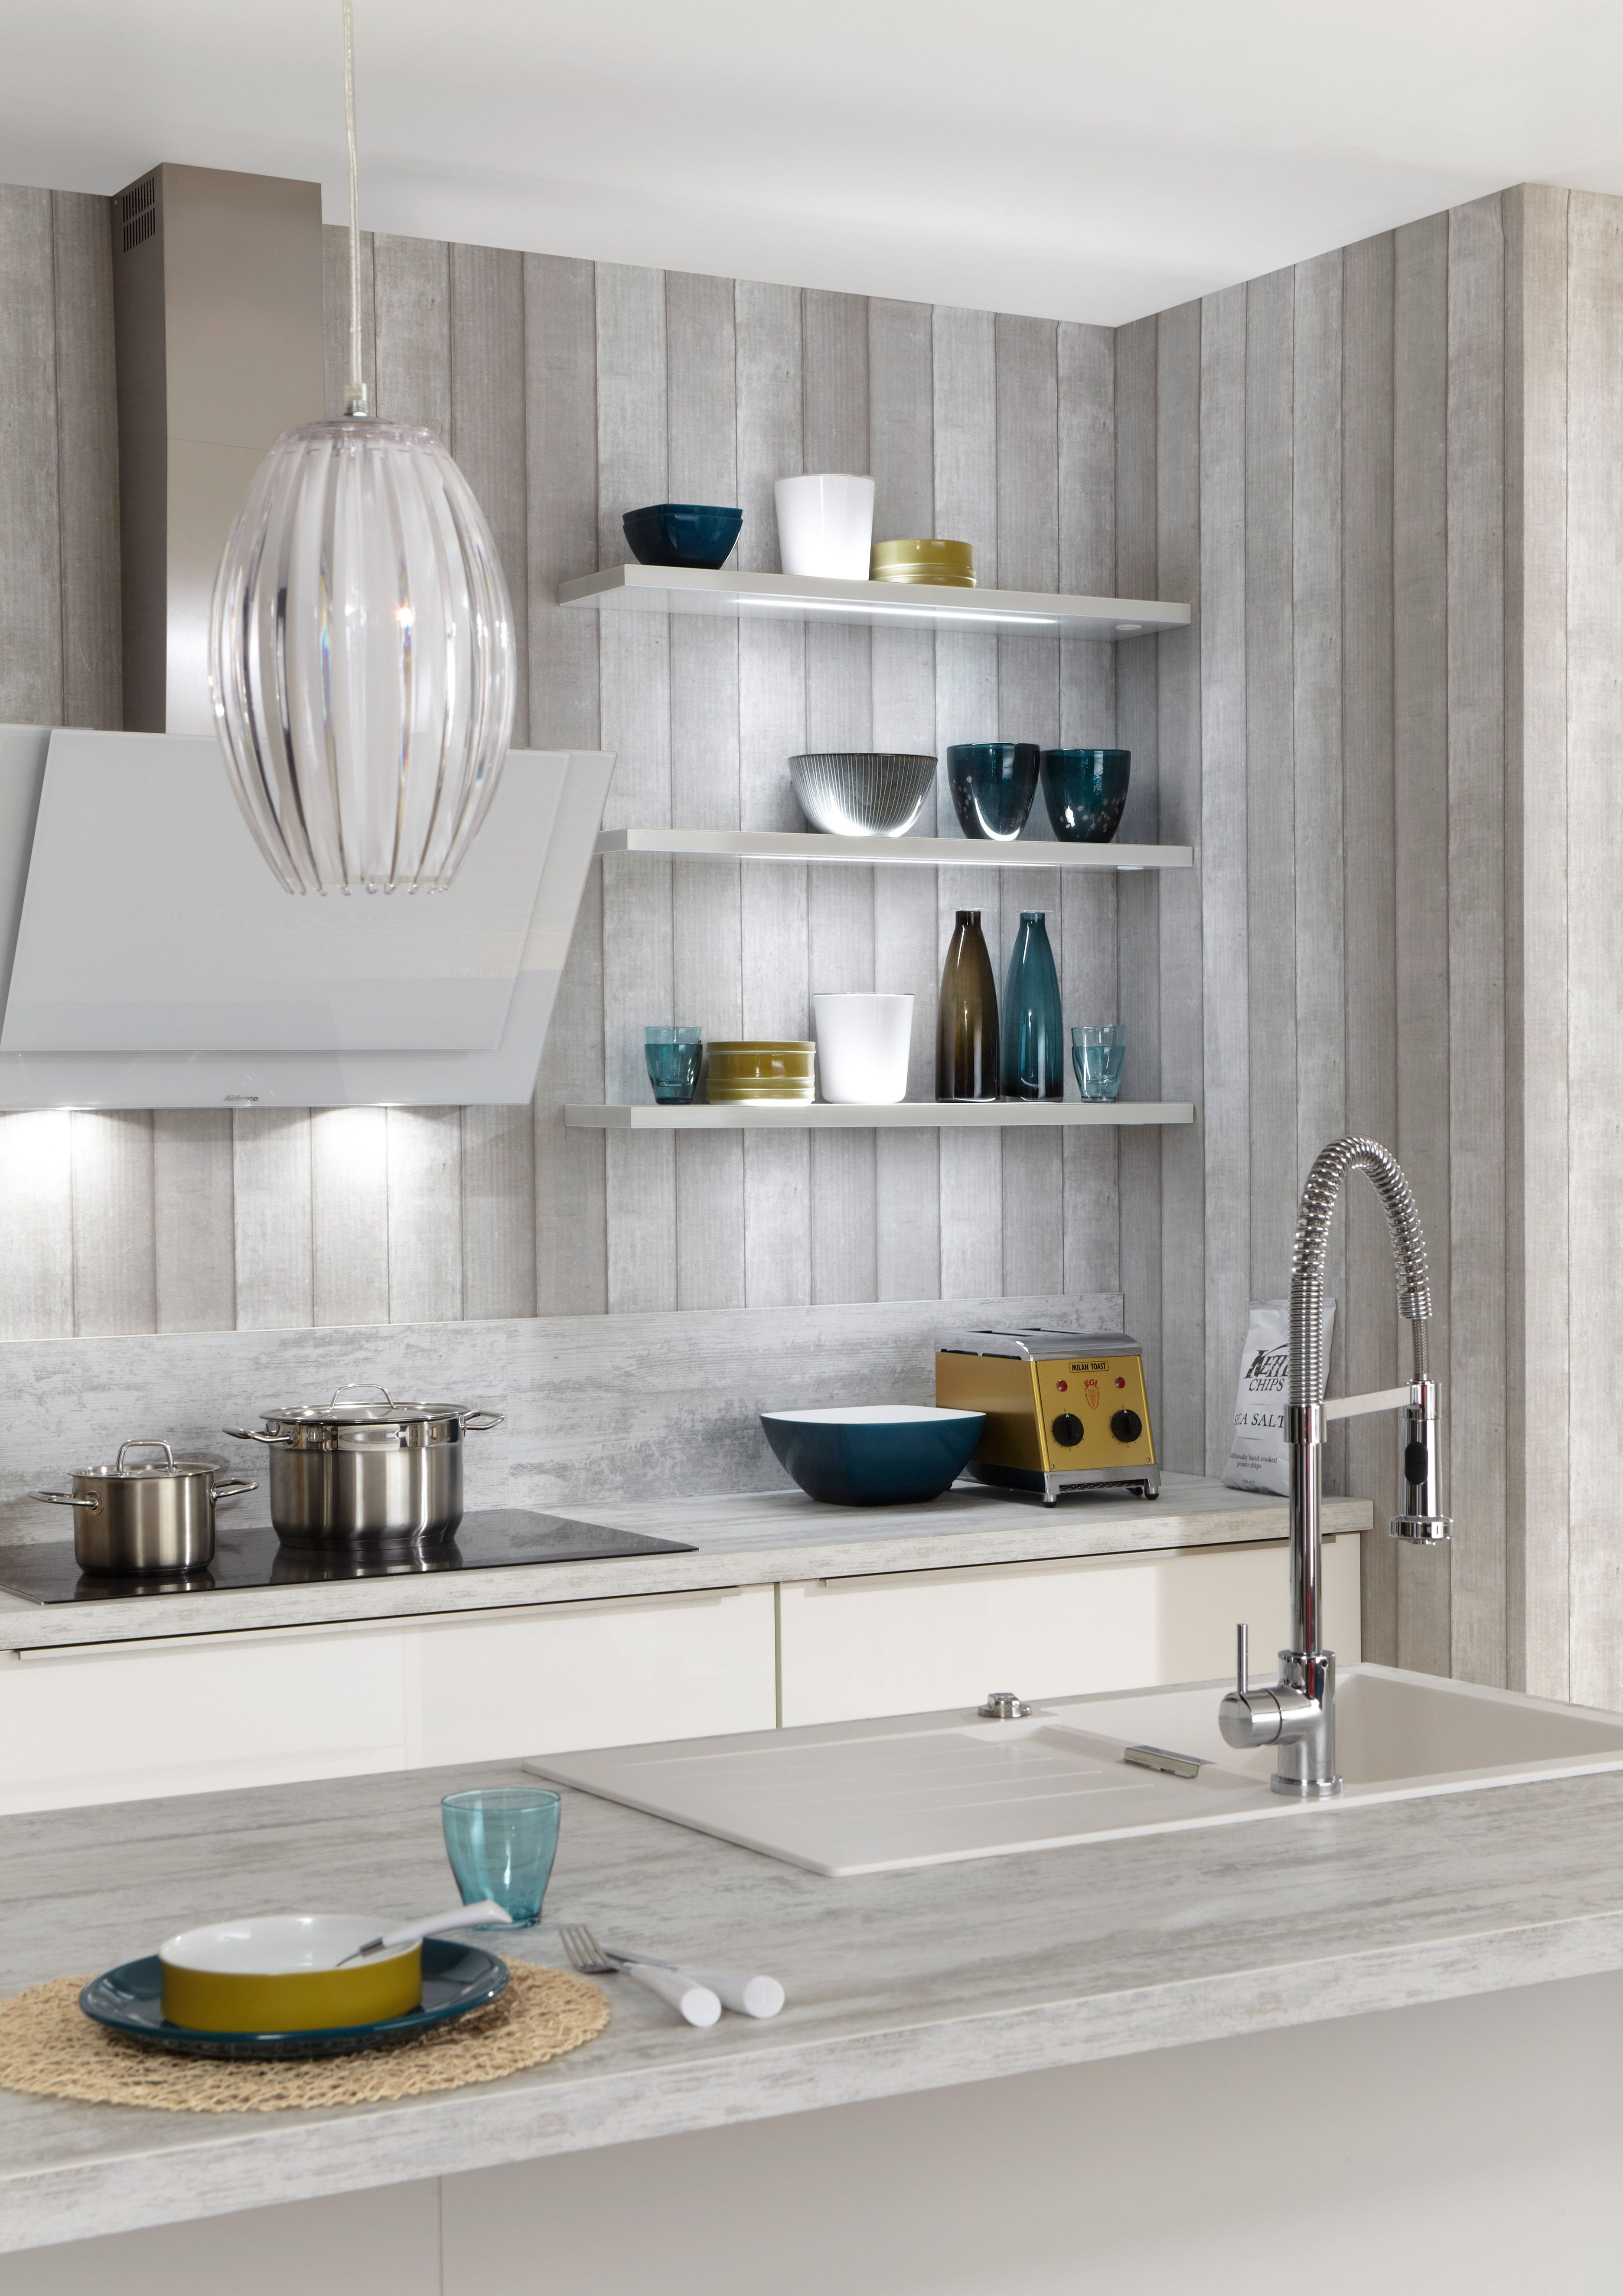 Cuisine ixina kitchens pinterest kitchens for Cuisine ixina